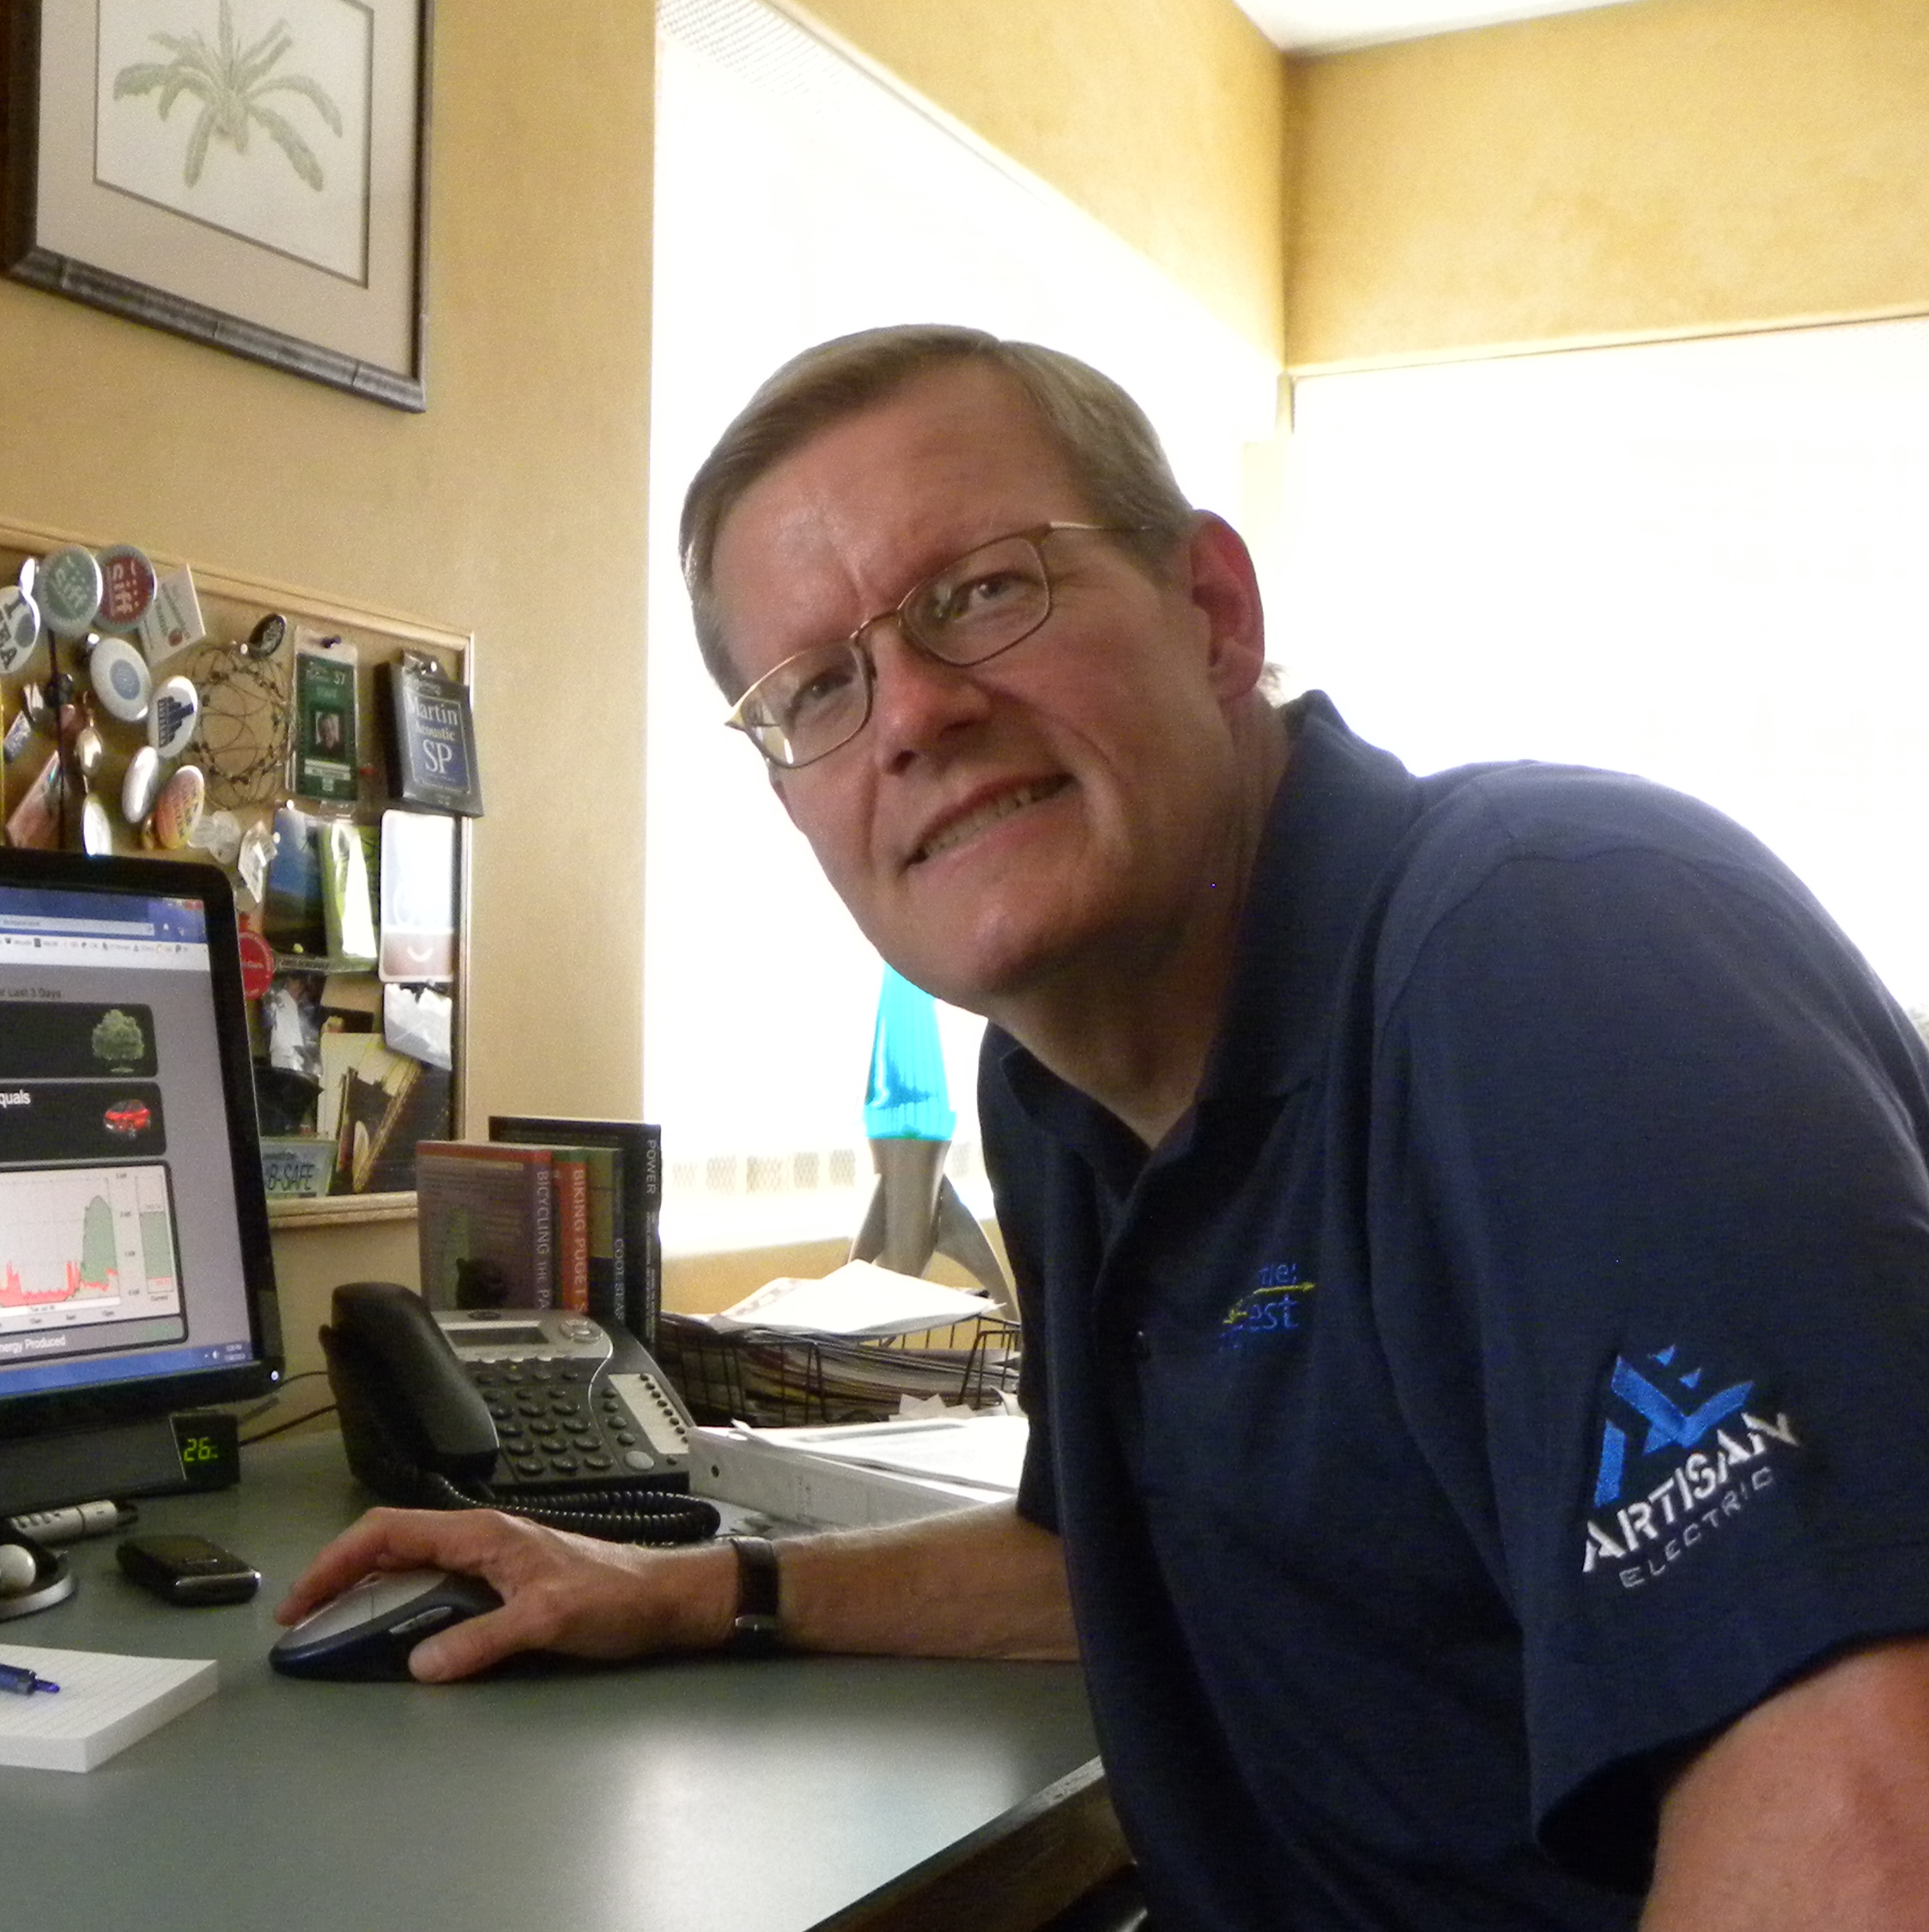 Bill Thorness sitting at his desk with EGauge reading